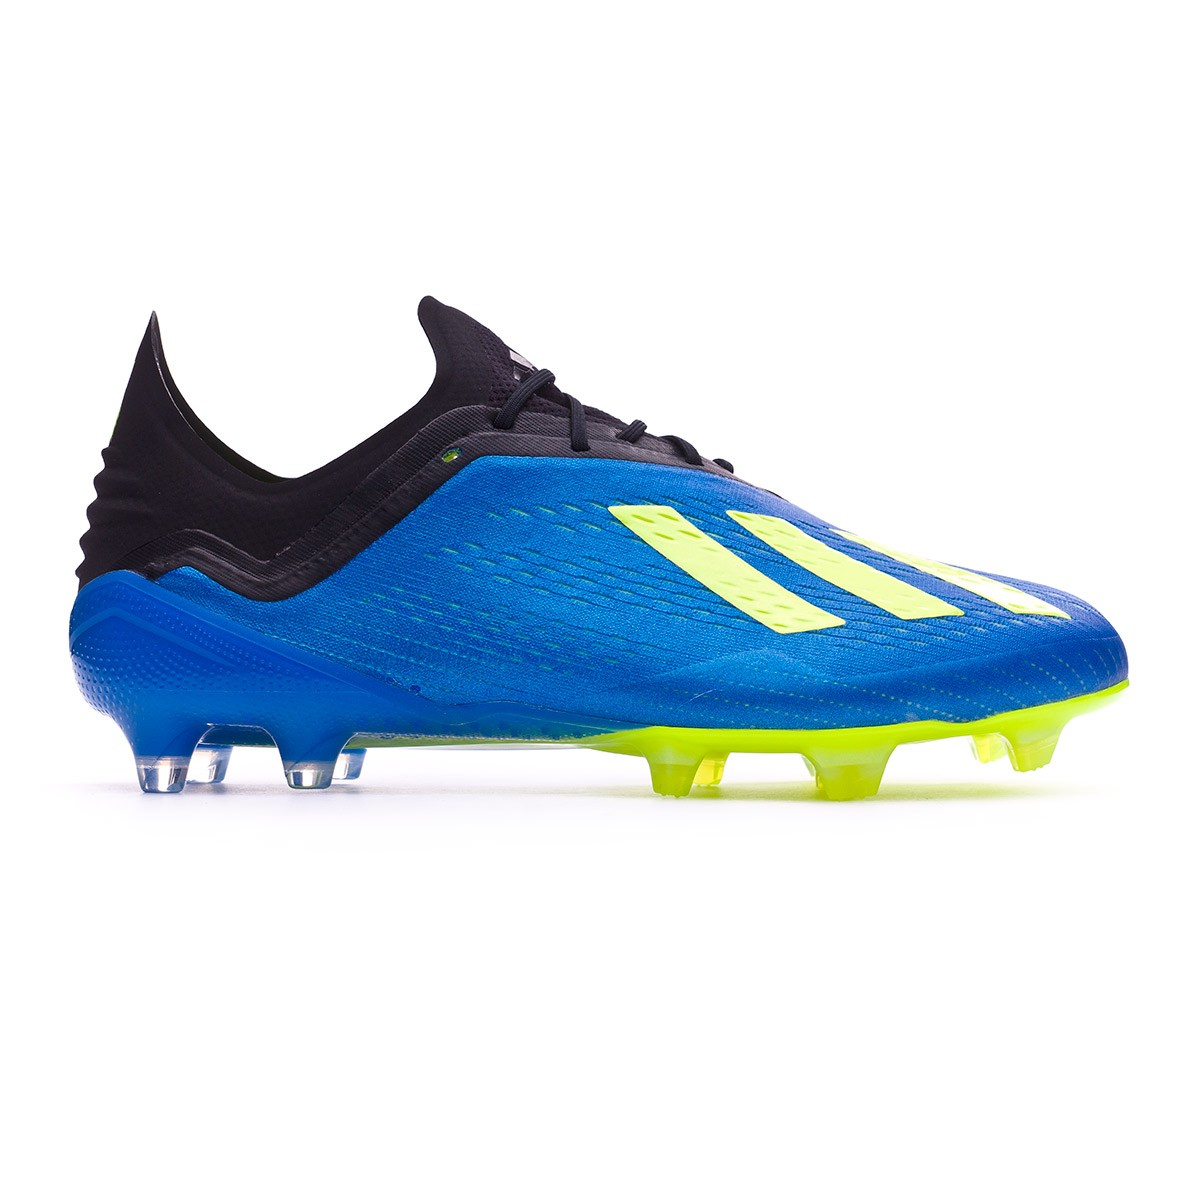 Bolsa abuela confirmar  Football Boots adidas X 18.1 FG Foot blue-Solar yellow-Black - Football  store Fútbol Emotion